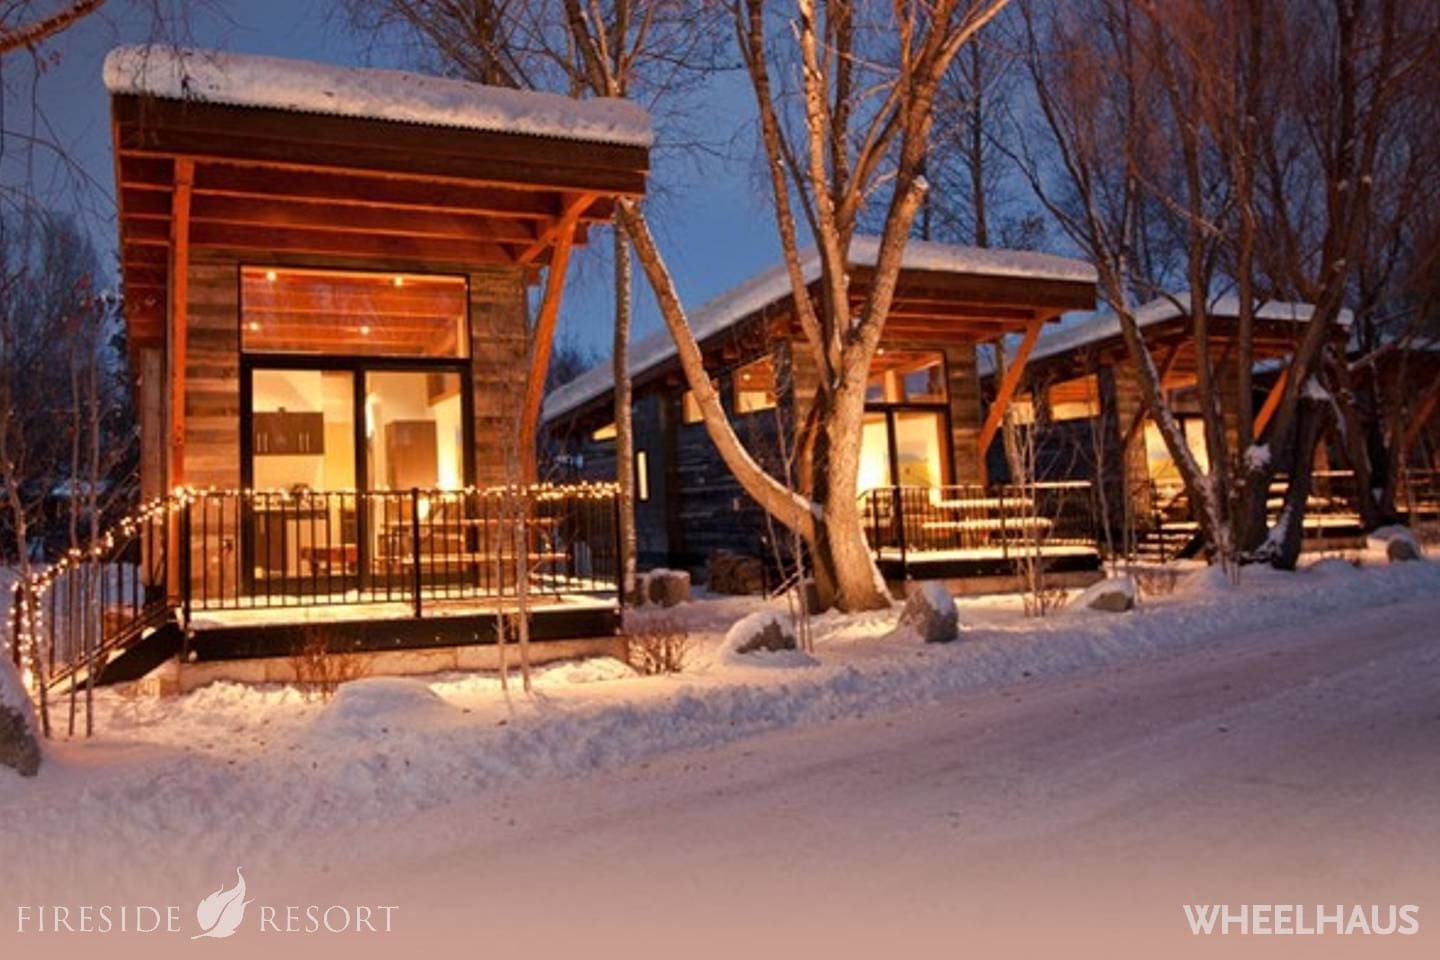 Cabins perfect for your ski getaway to Jackson Hole!